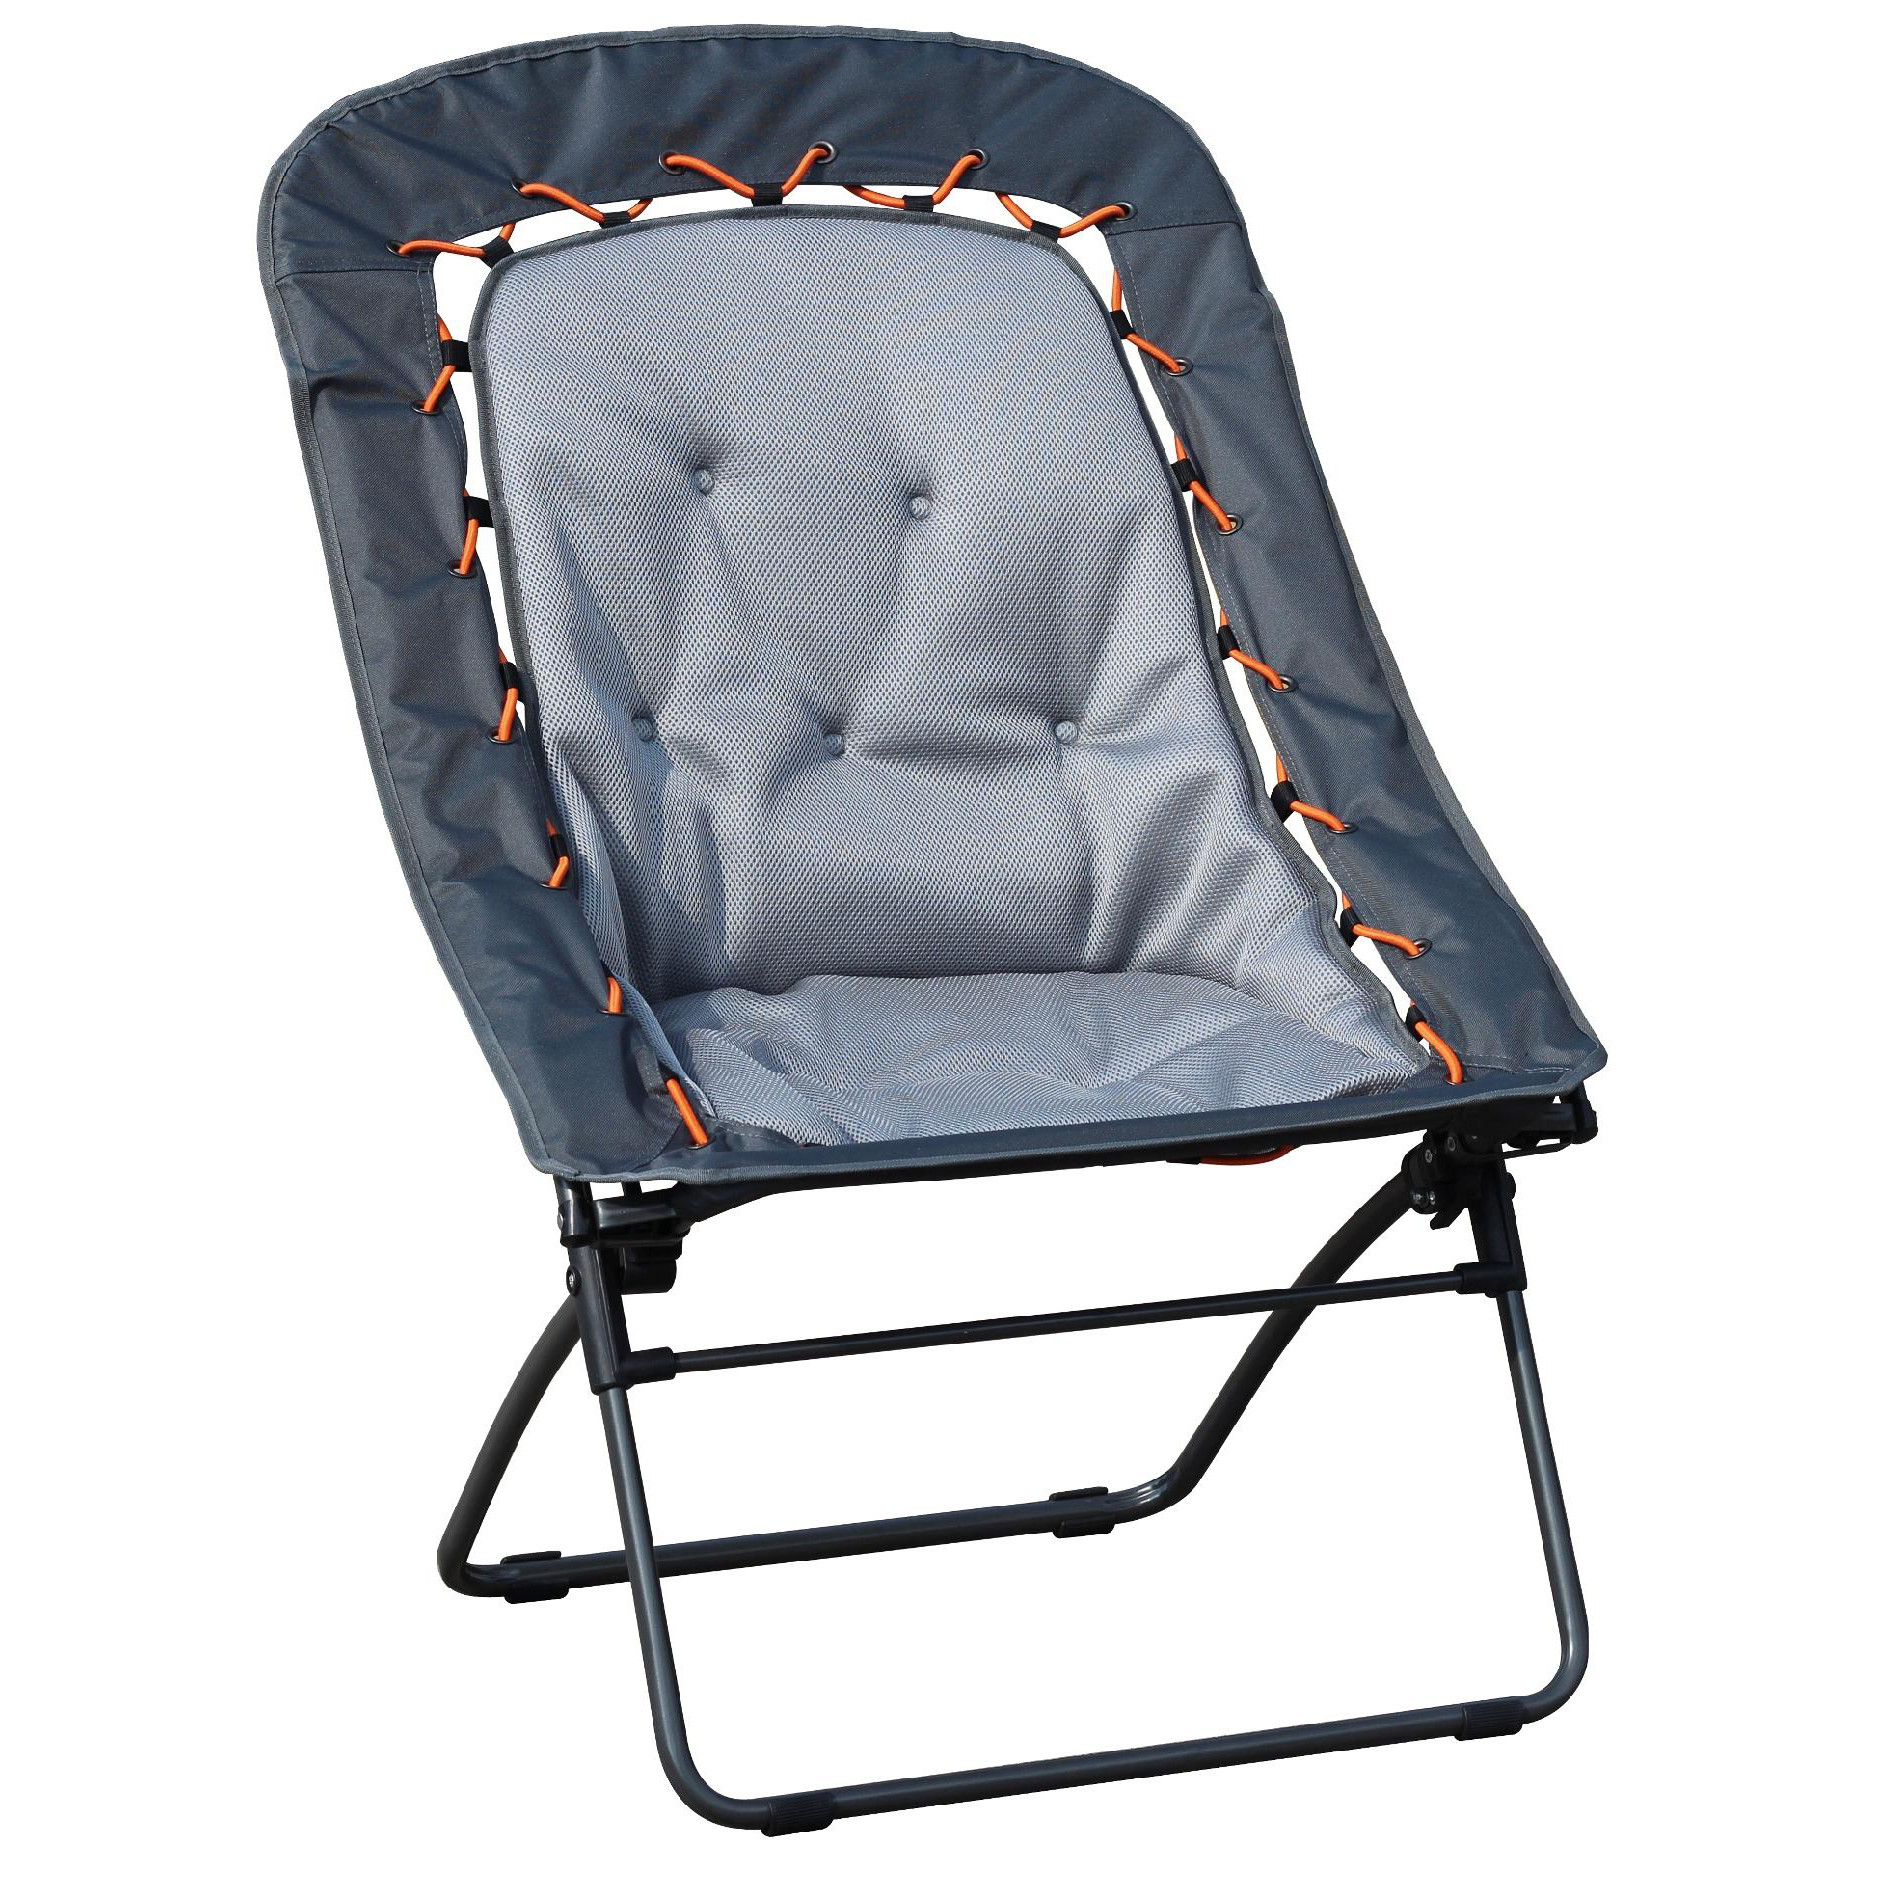 Bungi Chair Northwest Territory Oversize Bungee Chair Free Shipping